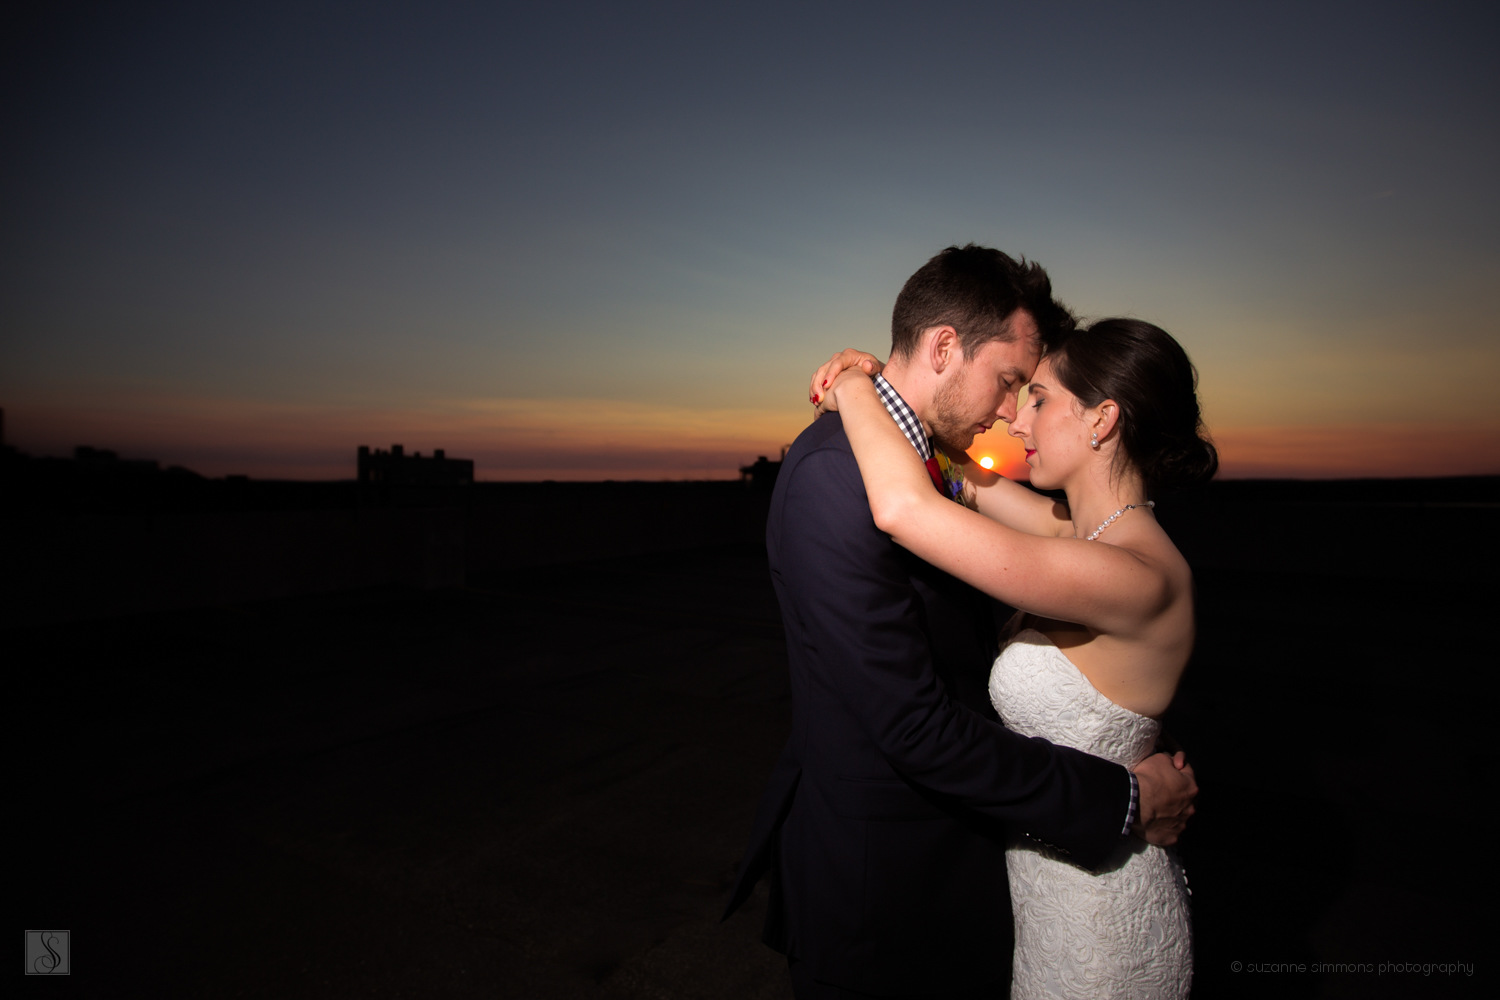 Sunset wedding portraits in Portland, Maine